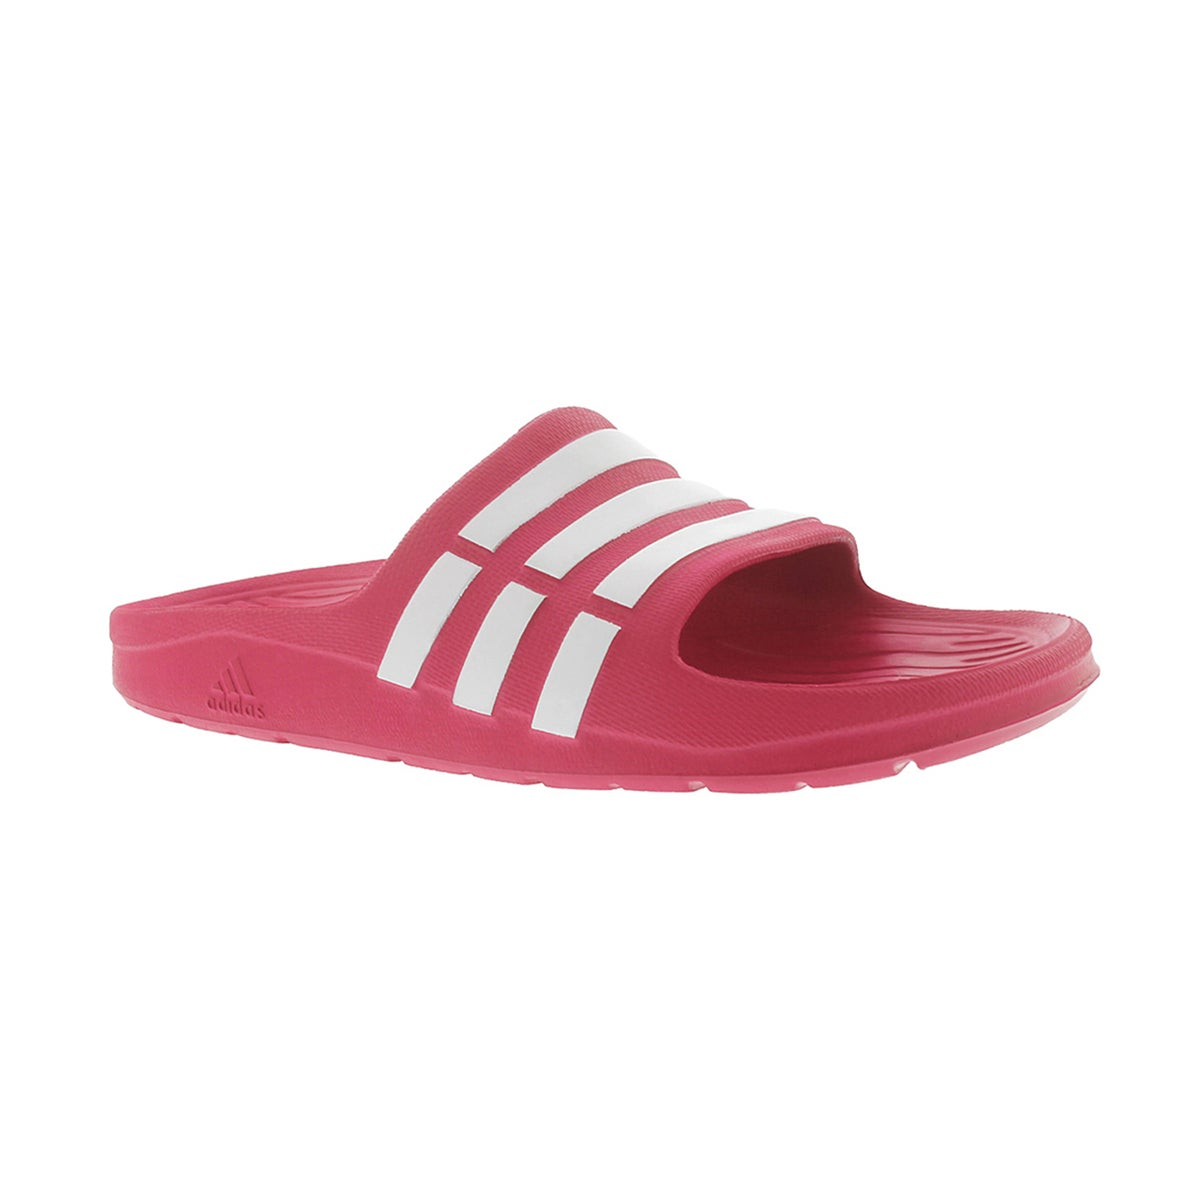 Girls' DURAMO pink slide sandals